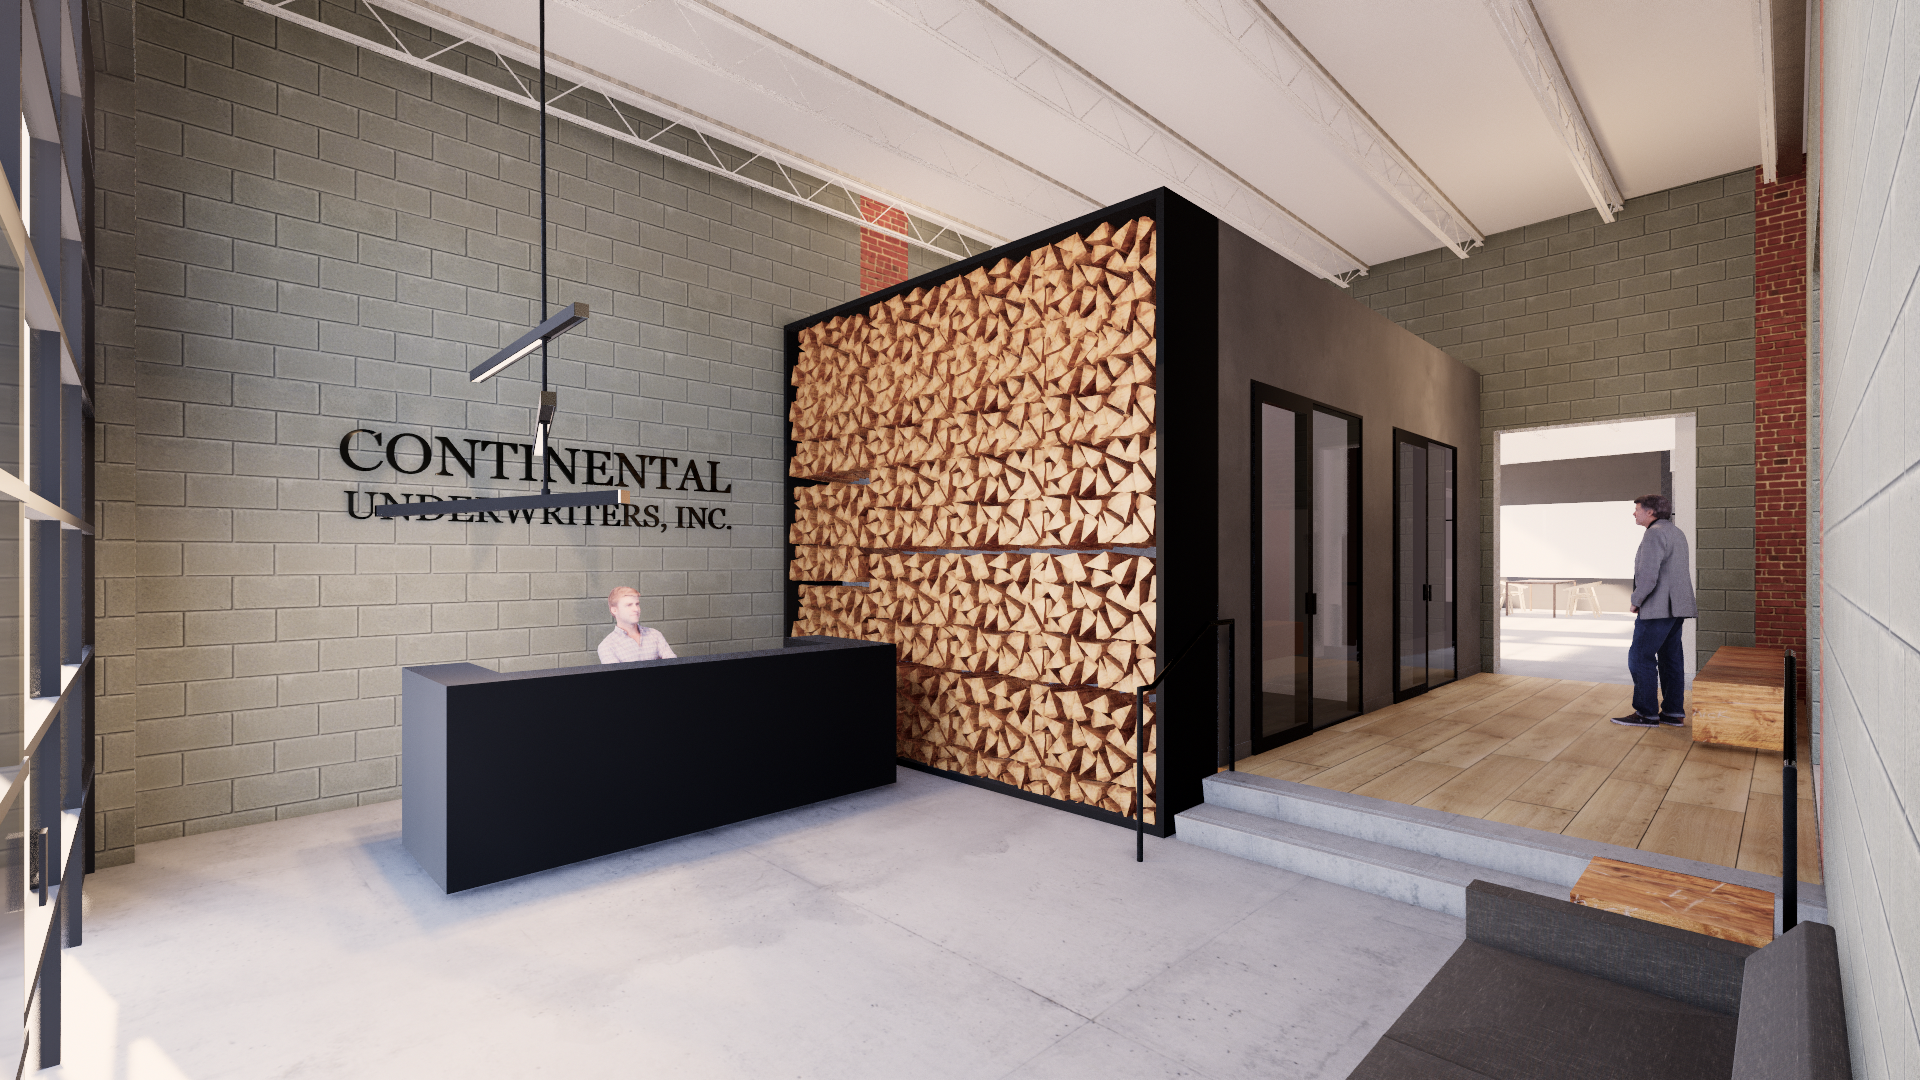 Continental Undwriters (Rendering by Fultz and Singh Architects)